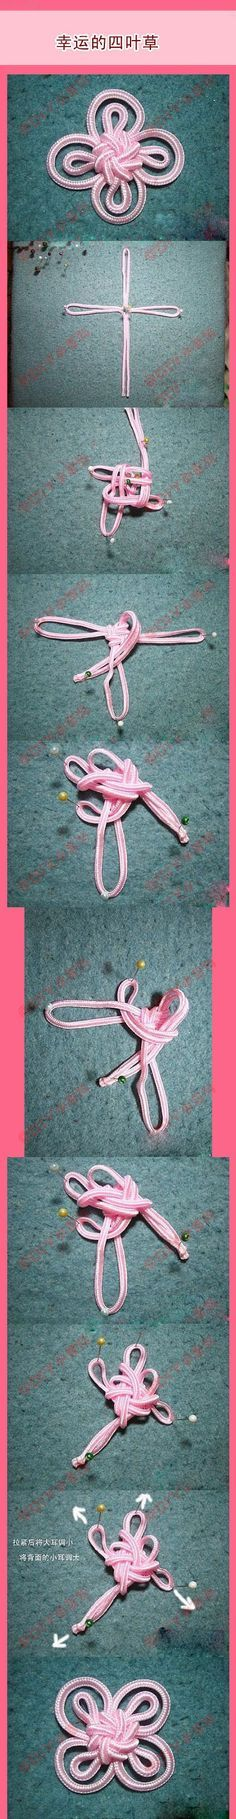 DIY Clover Chinese Knot | FabDIY - I wonder if this can work as a button on a coat..